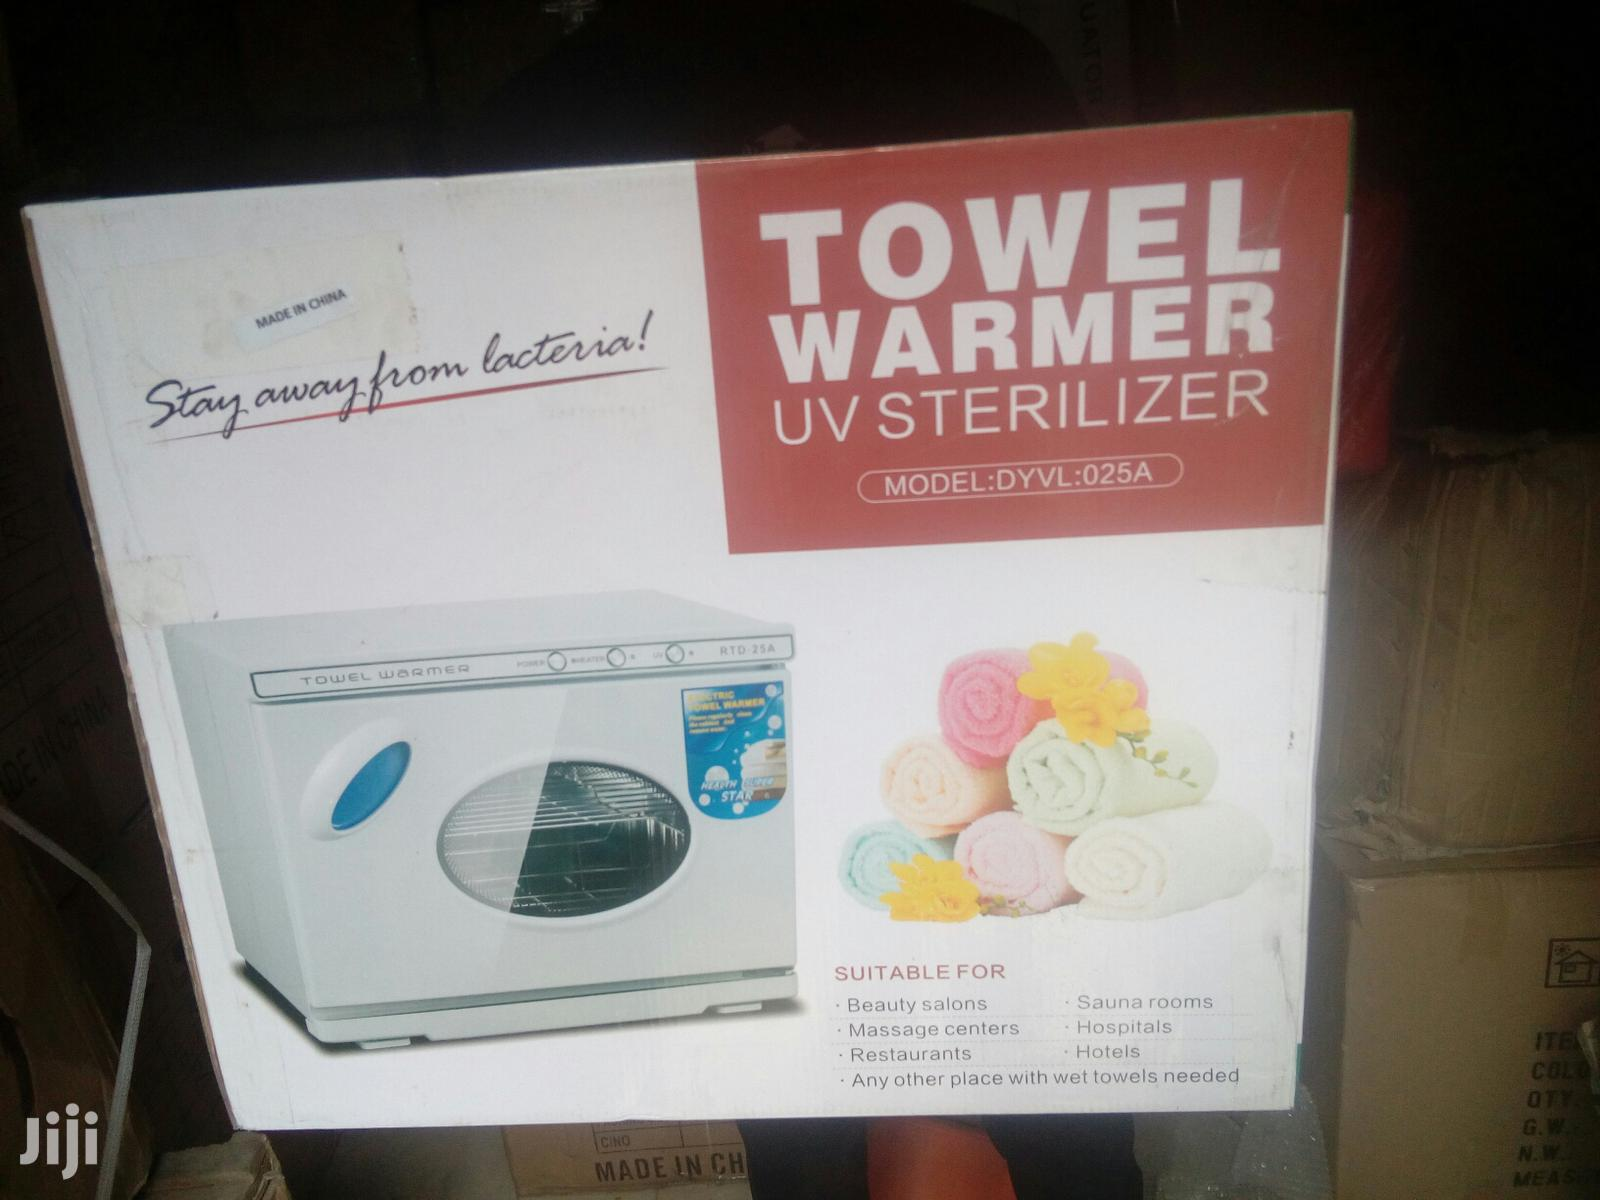 Brand New Towel Warmer | Home Accessories for sale in Accra Metropolitan, Greater Accra, Ghana